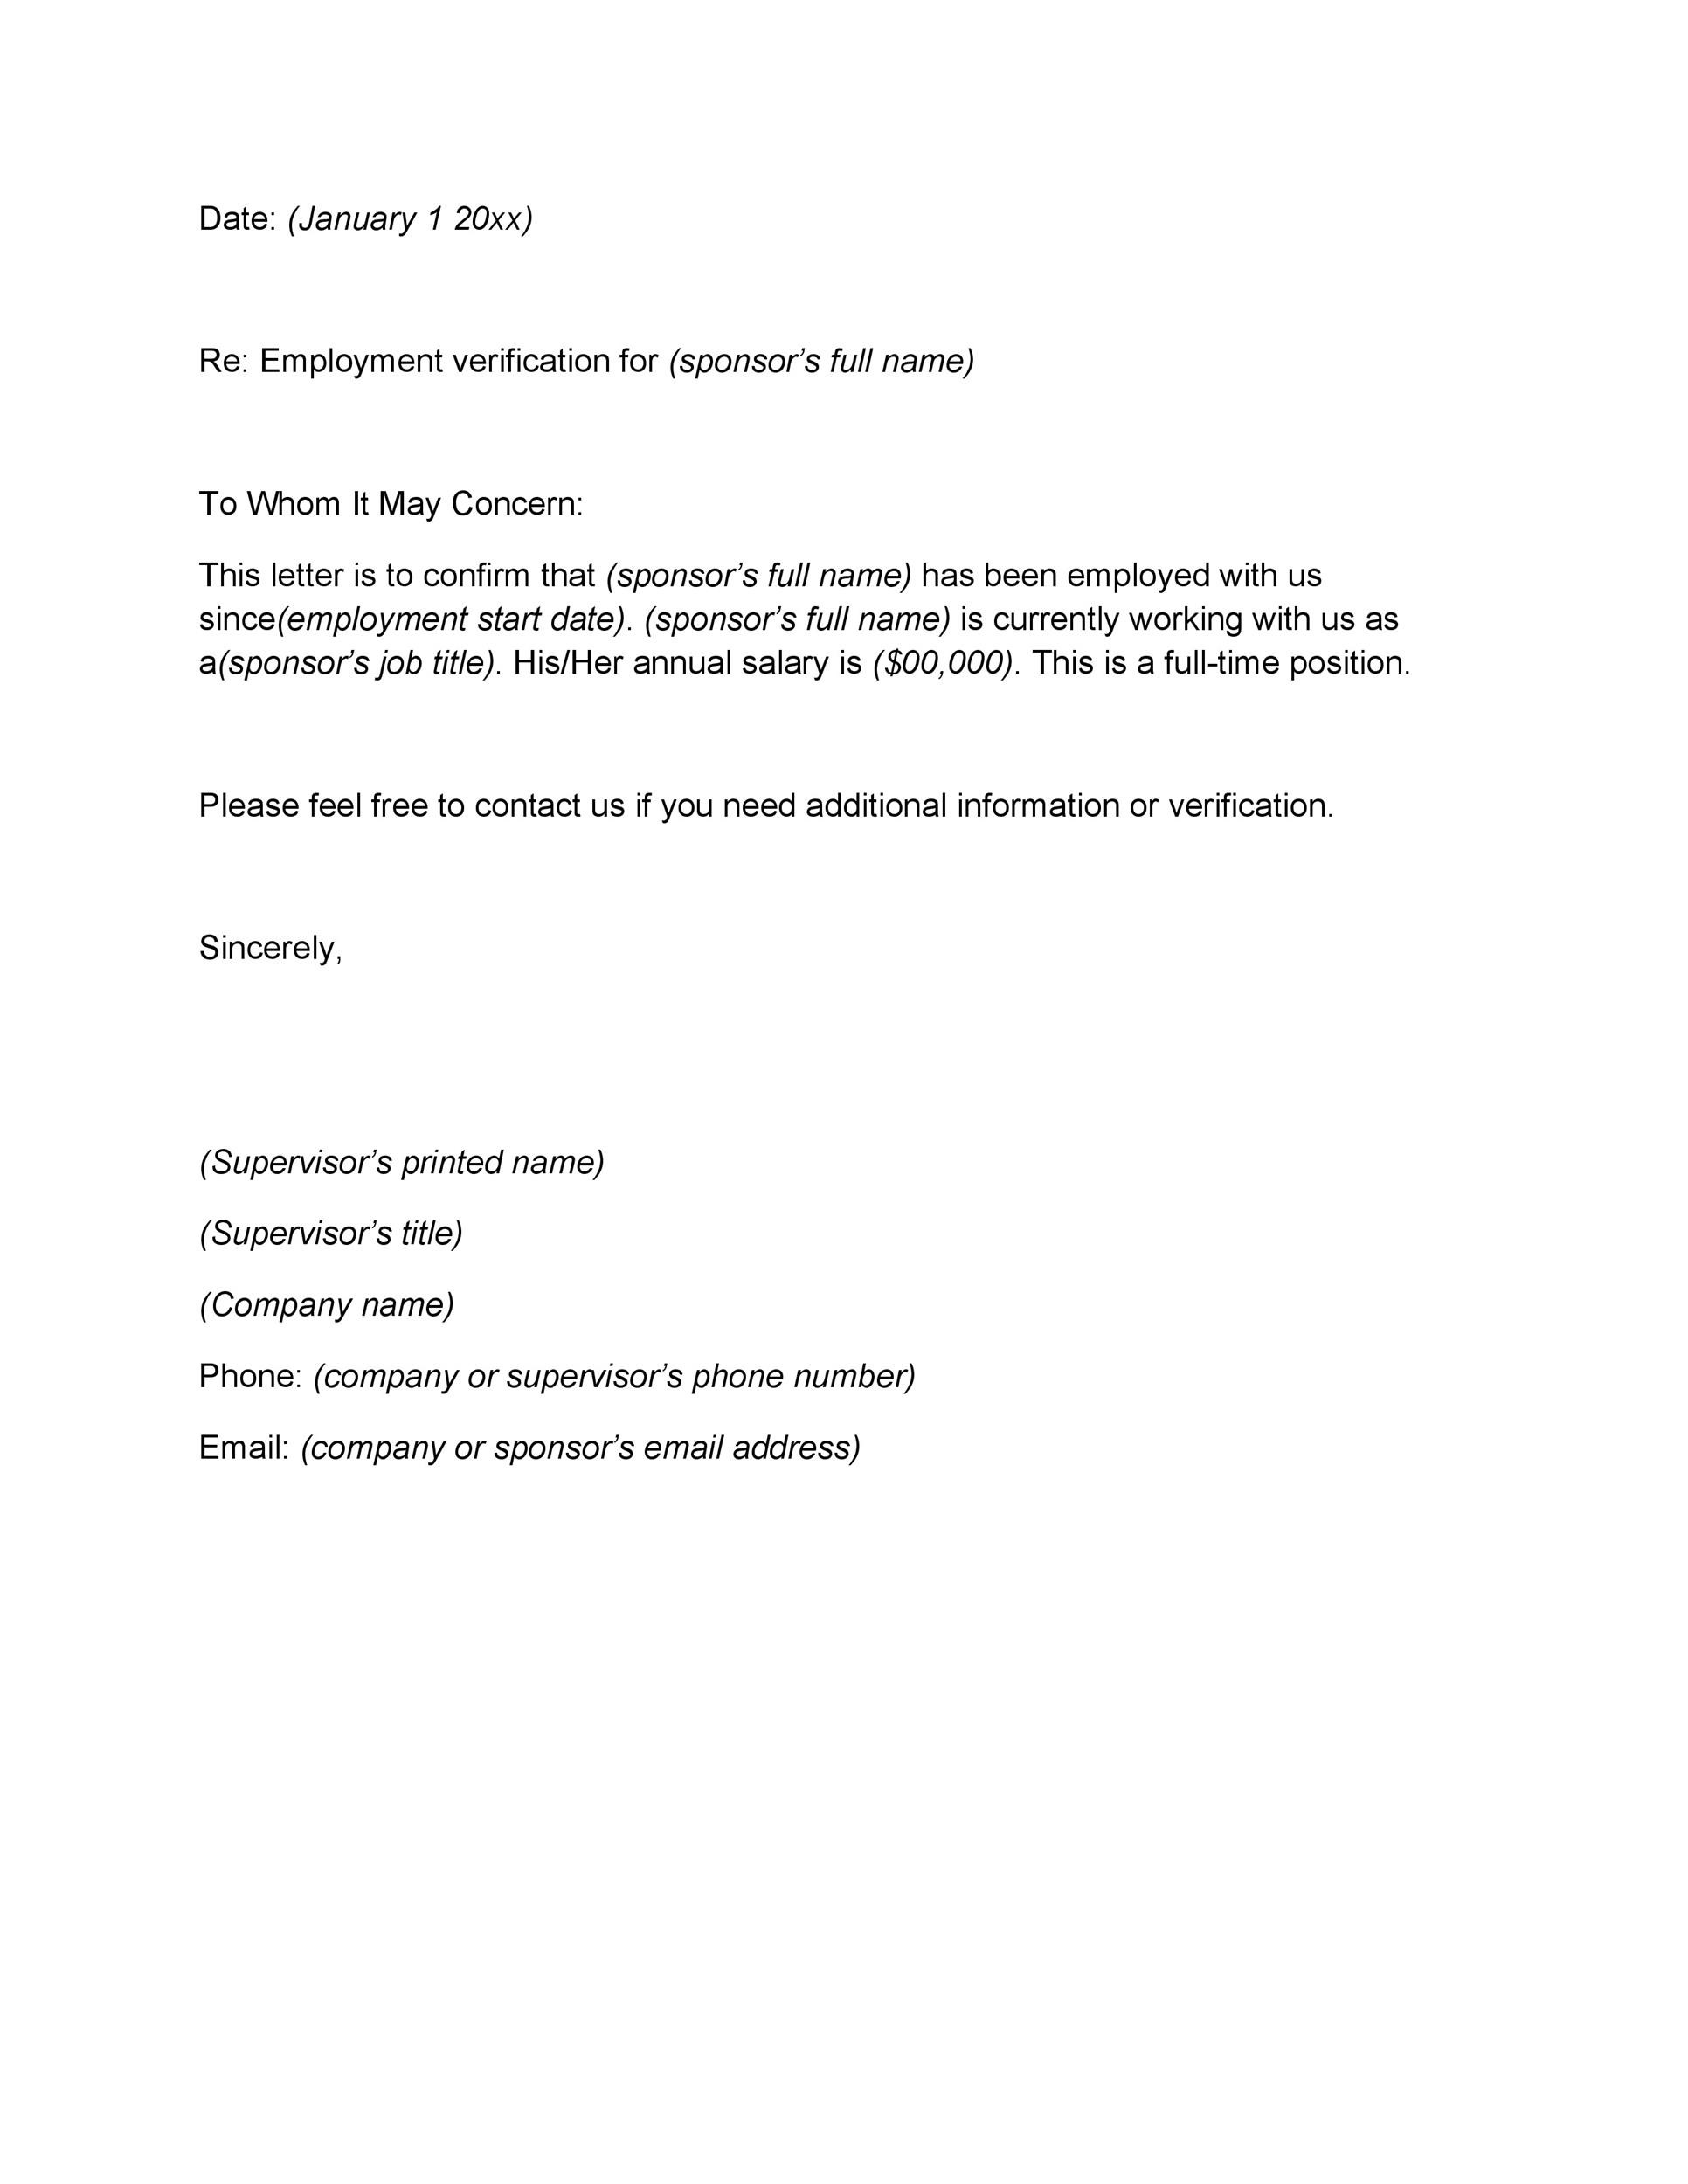 Doc575709 Salary Proof Letter Salary Verification Letter – Proof of Employment Form